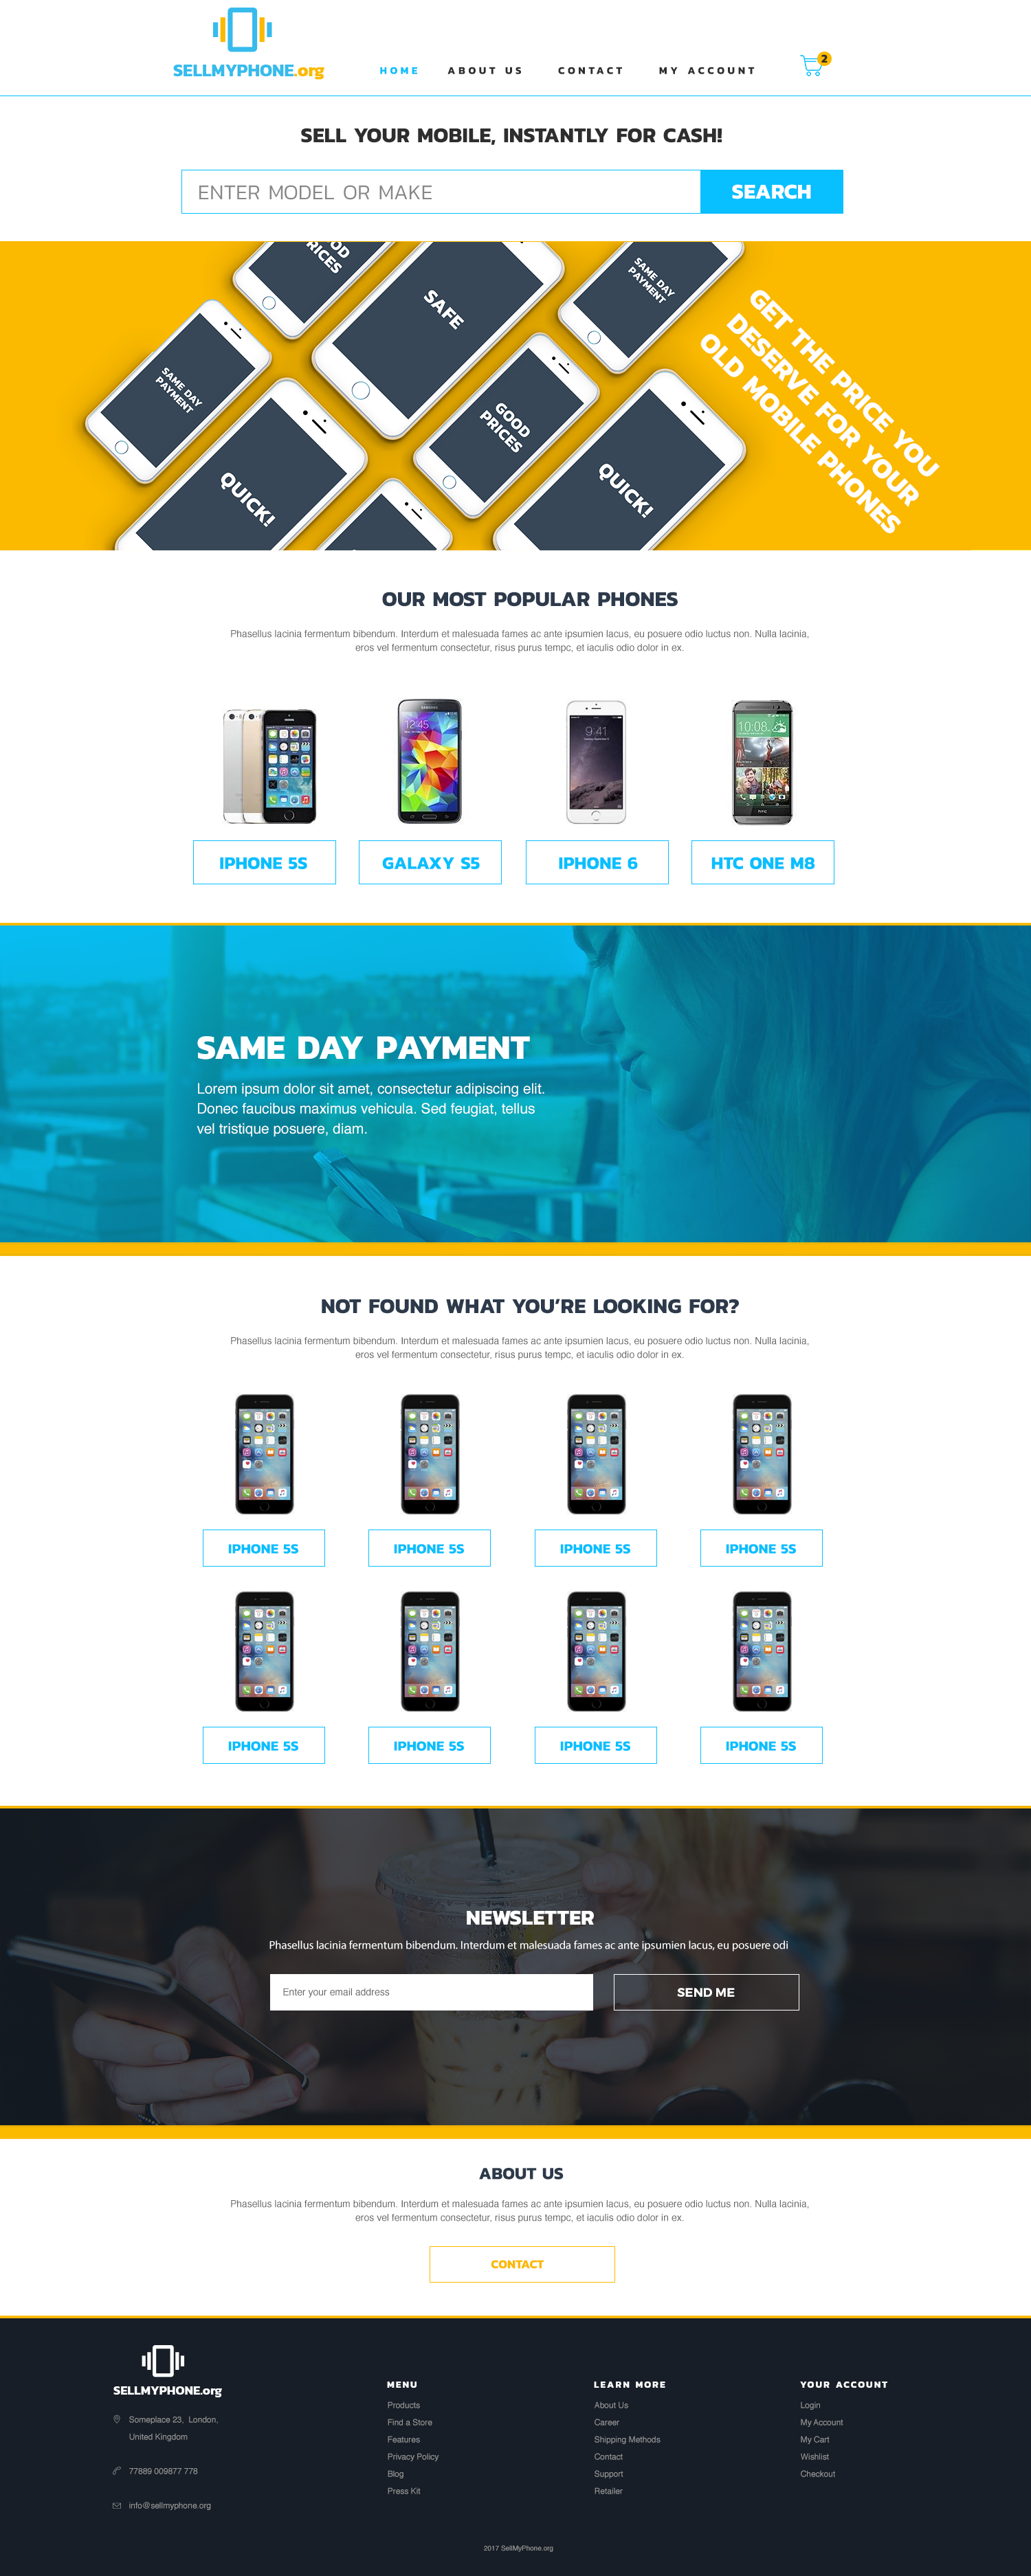 Sell My Phone Site Design Idea